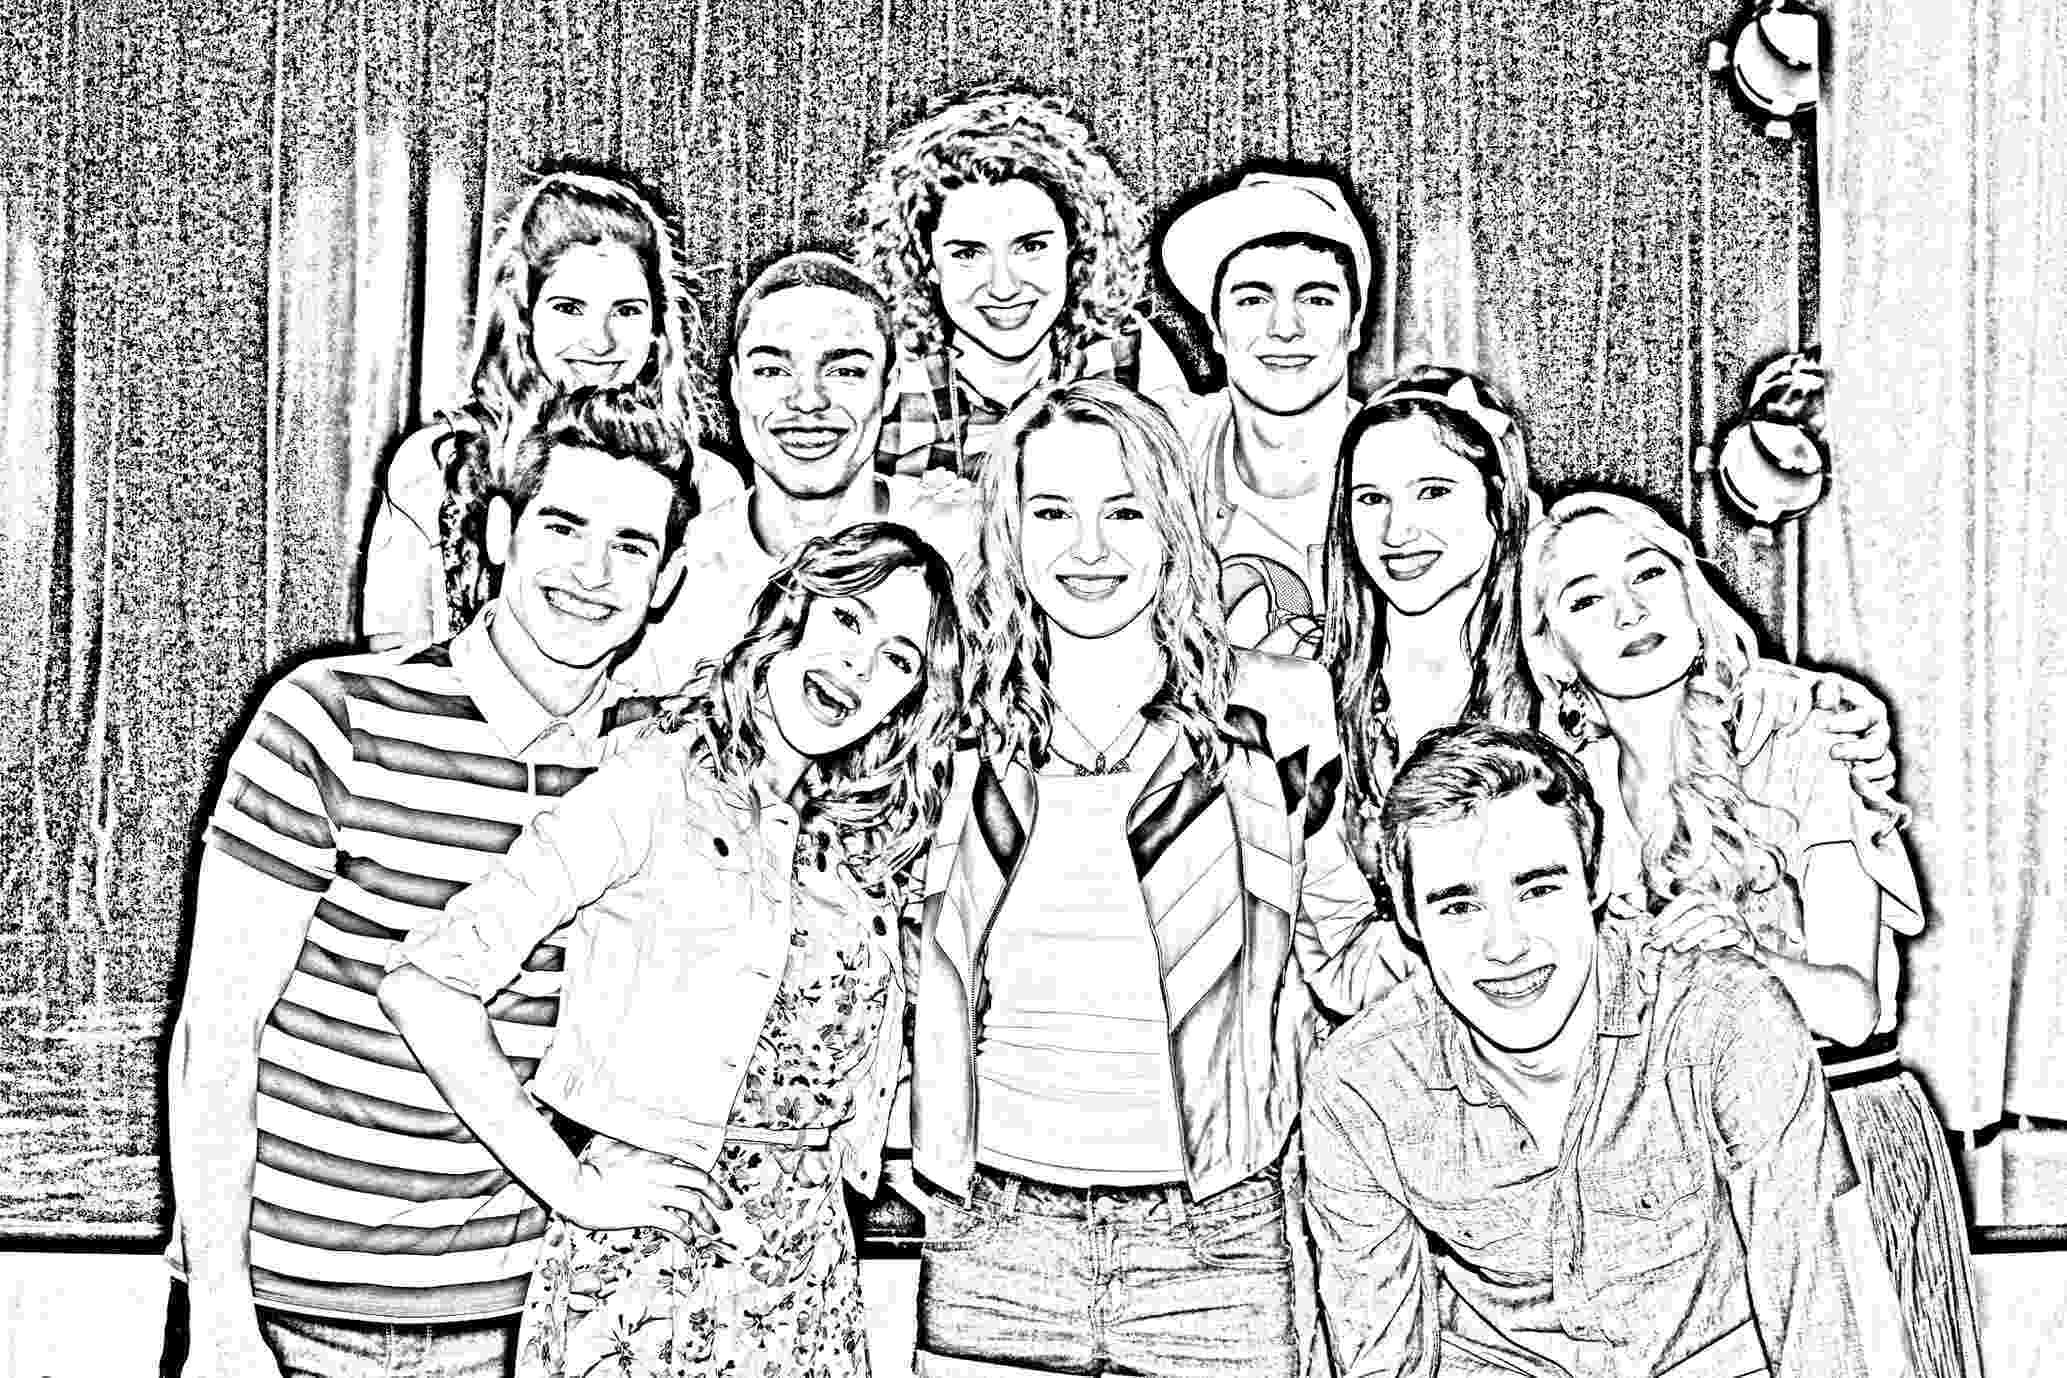 wizards of waverly place coloring pages wizards of waverly place coloring pages for kids wizards place of waverly pages coloring